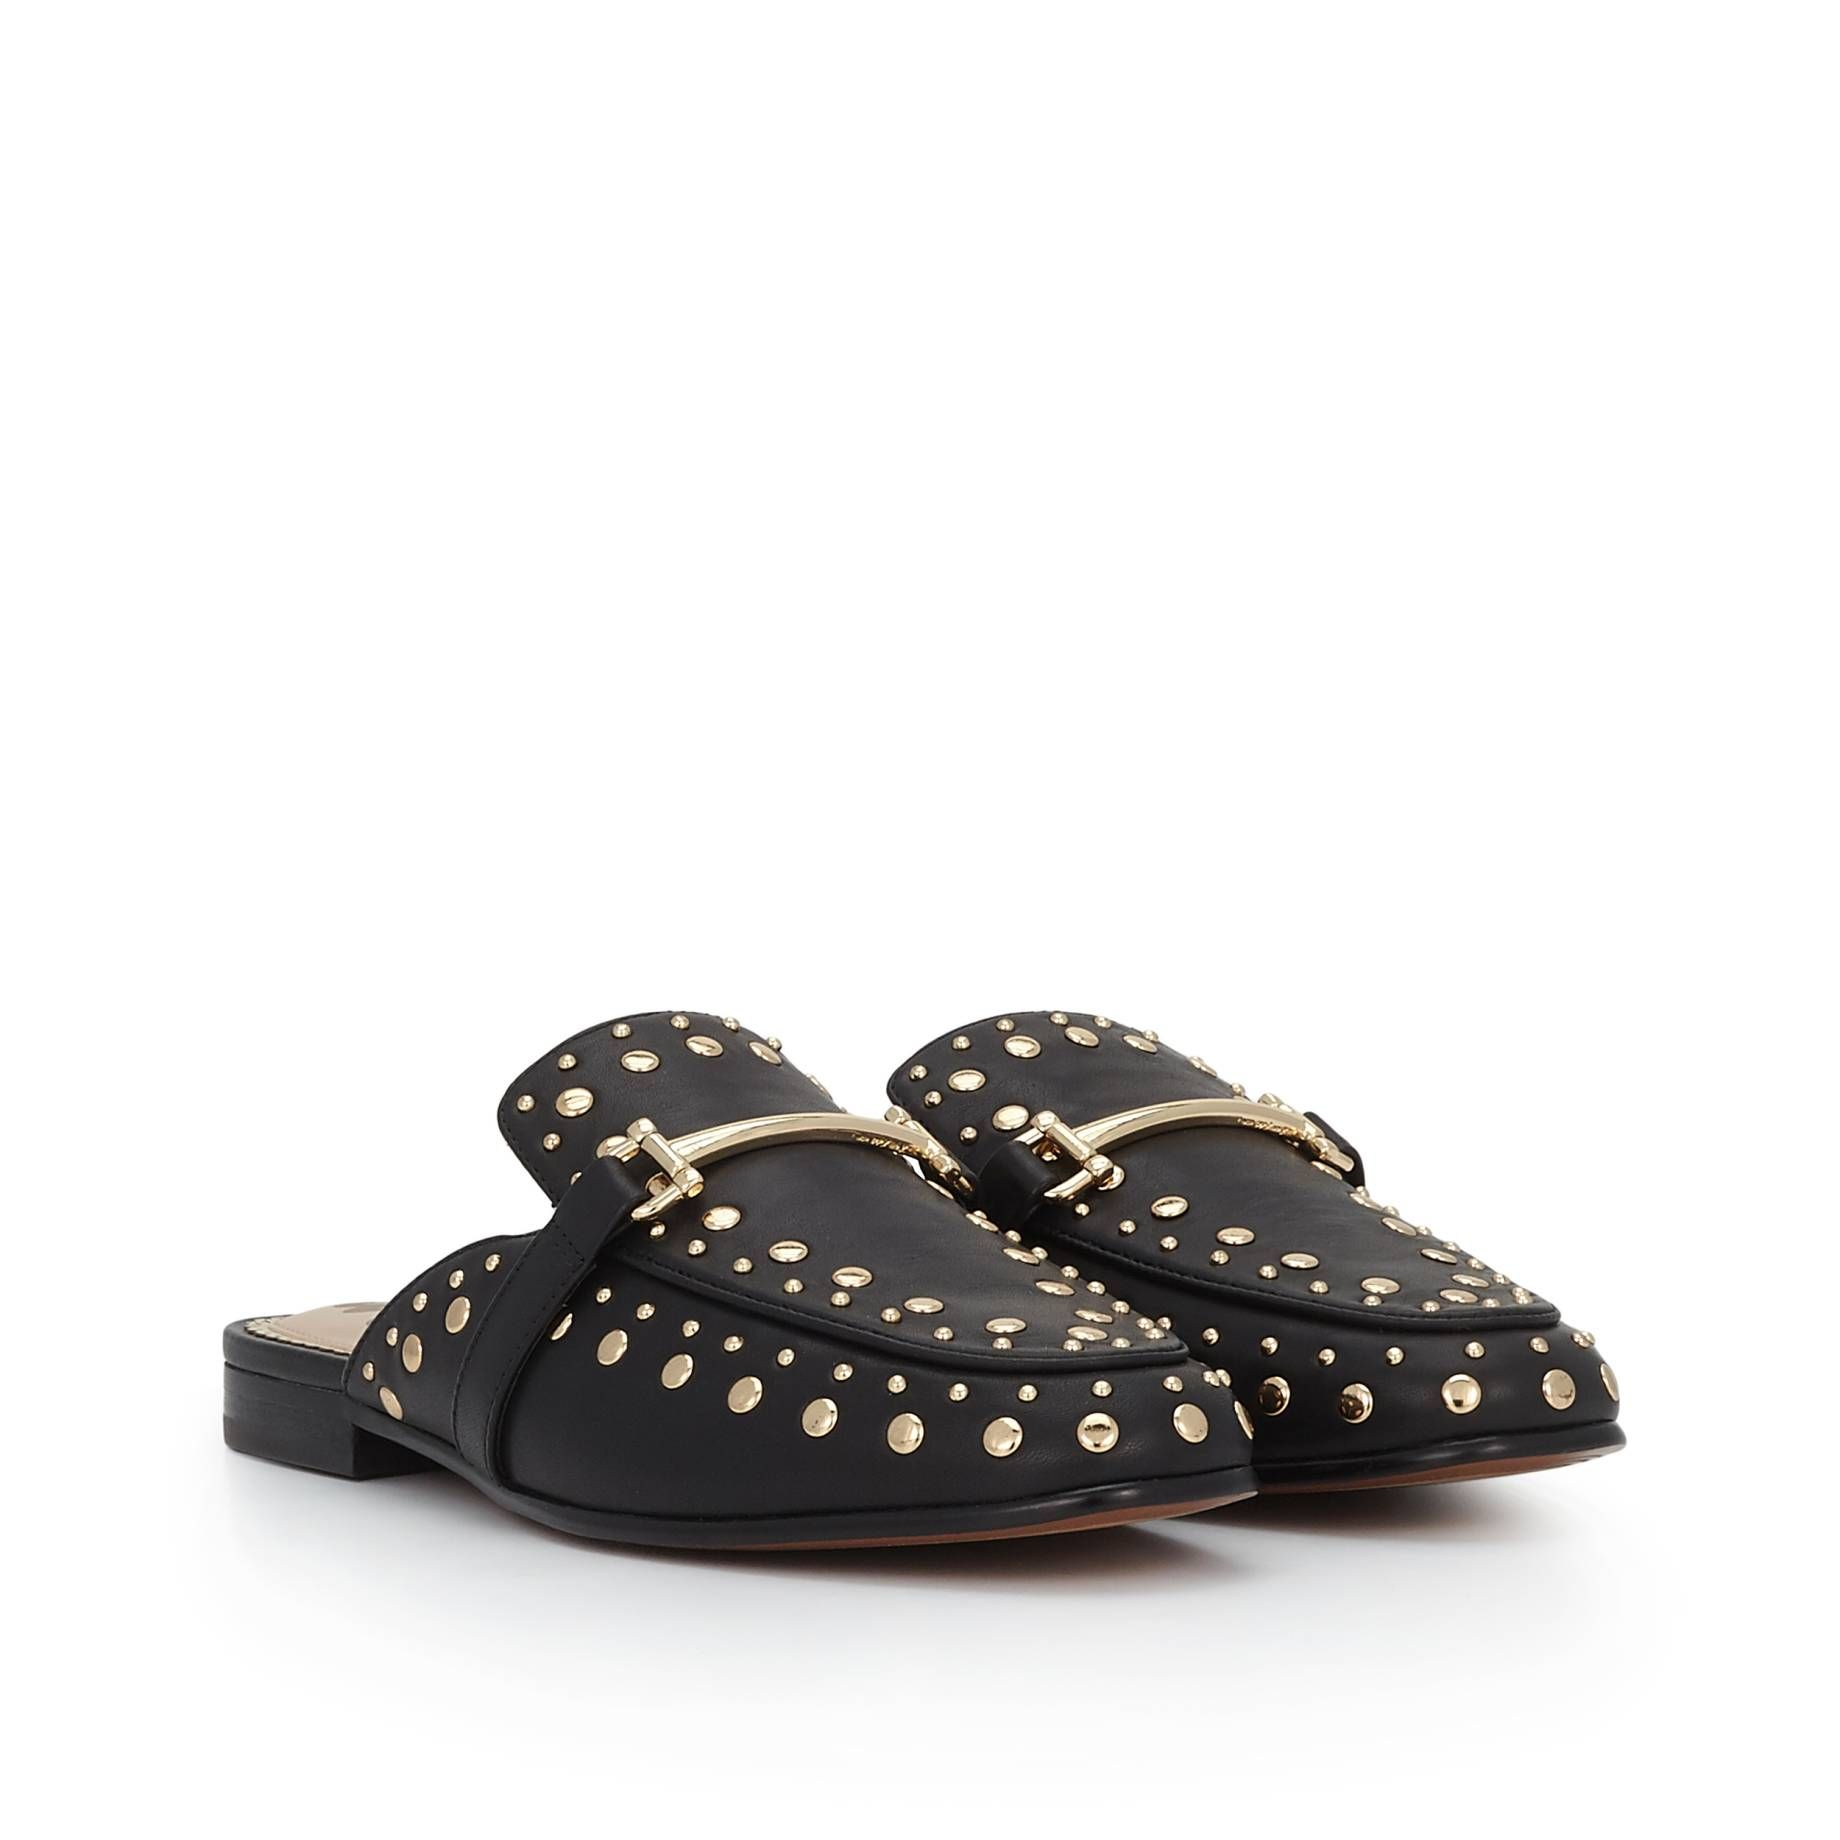 4cbbe475be7b6a Marilyn Studded Slipper by Sam Edelman - - View 1